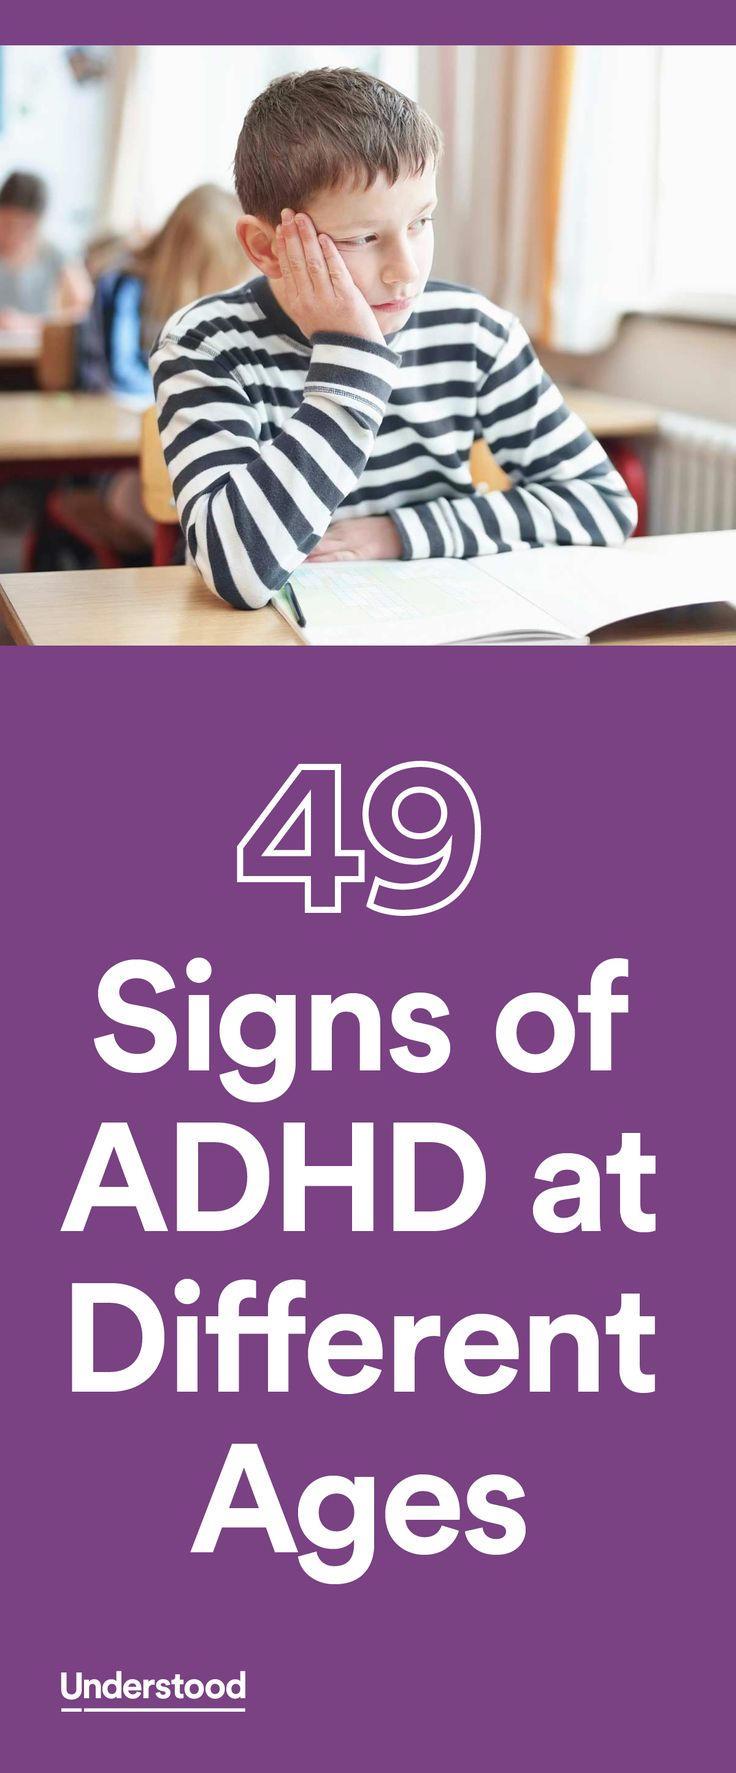 It's not always easy to spot ADHD symptoms. This checklist can help give you an idea of whether your child is showing signs of ADHD.